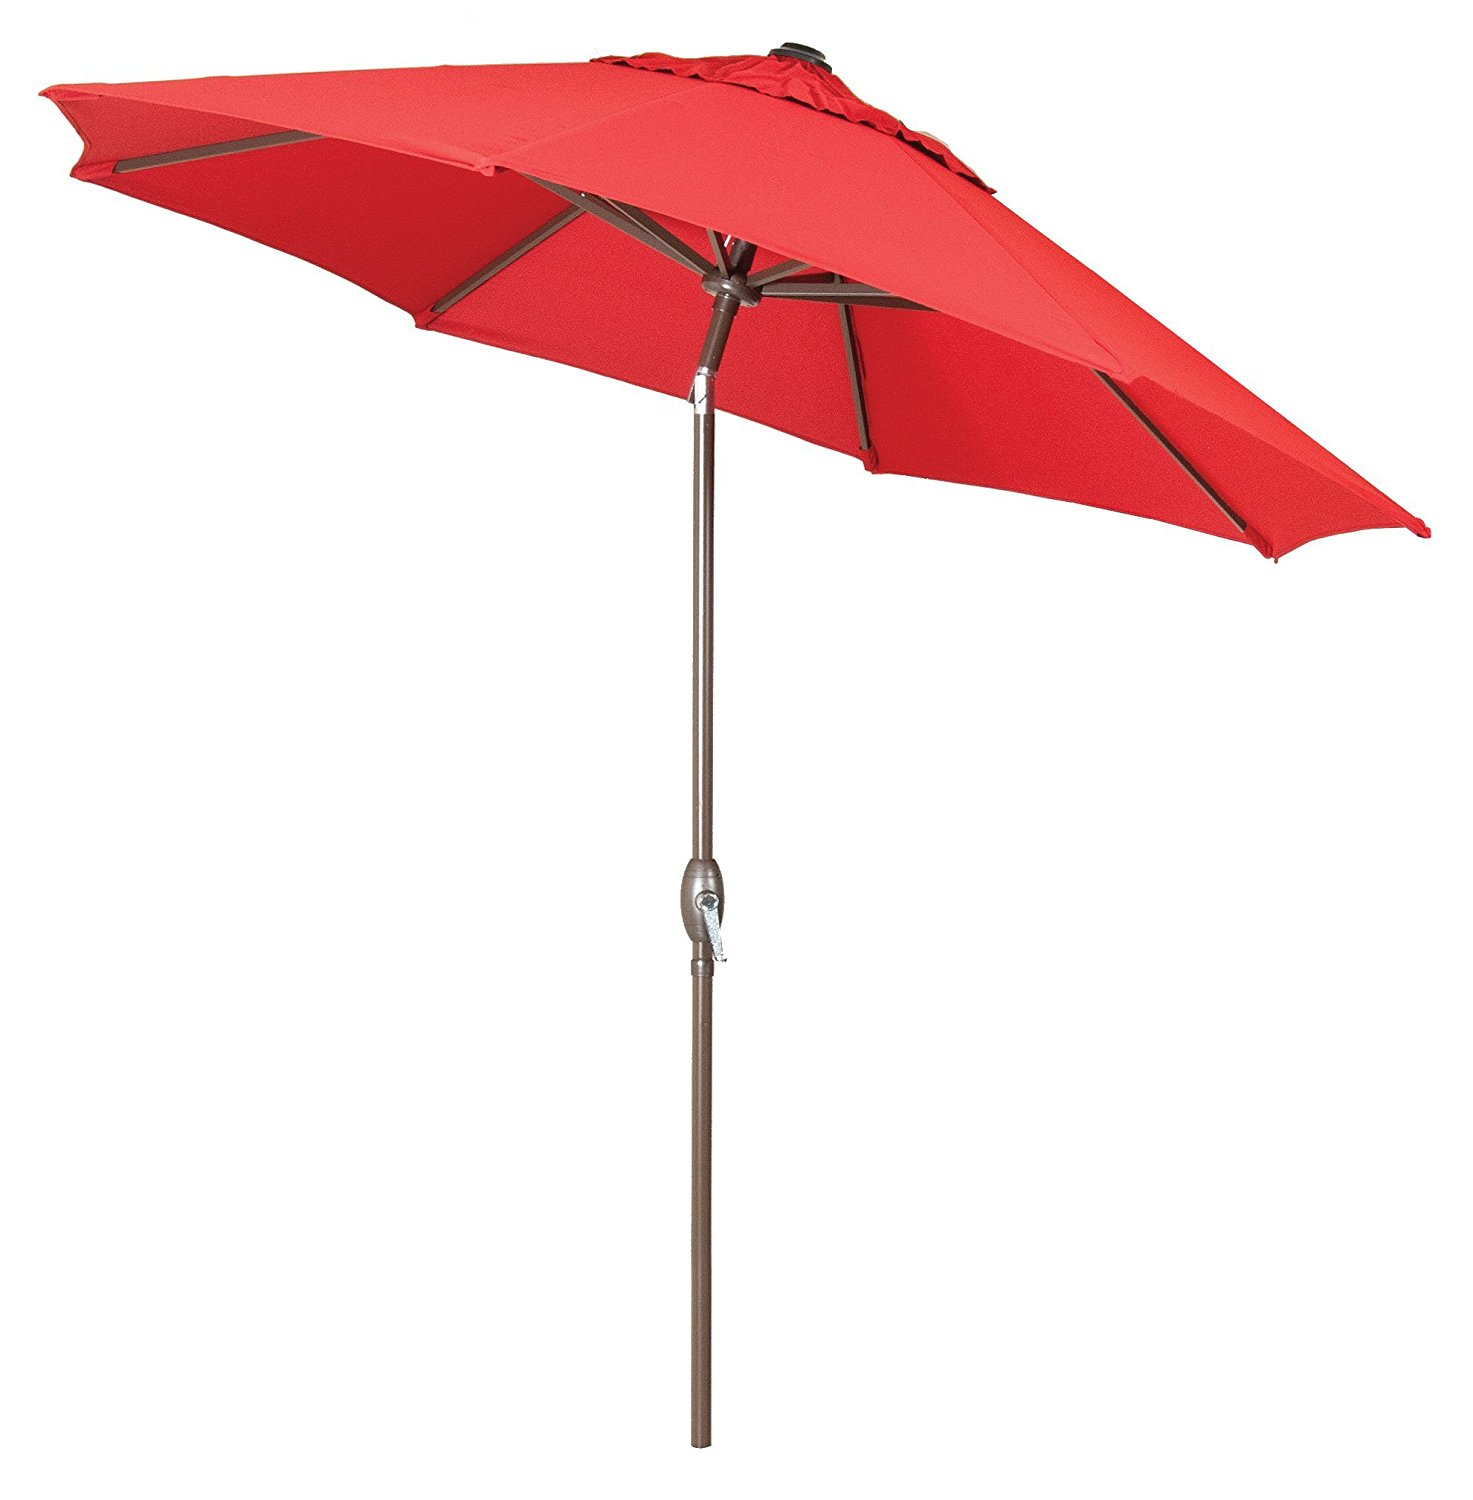 premium market outdoor patio umbrella bright red crank tilt stand sold separately walmartcom - Walmart Patio Umbrellas